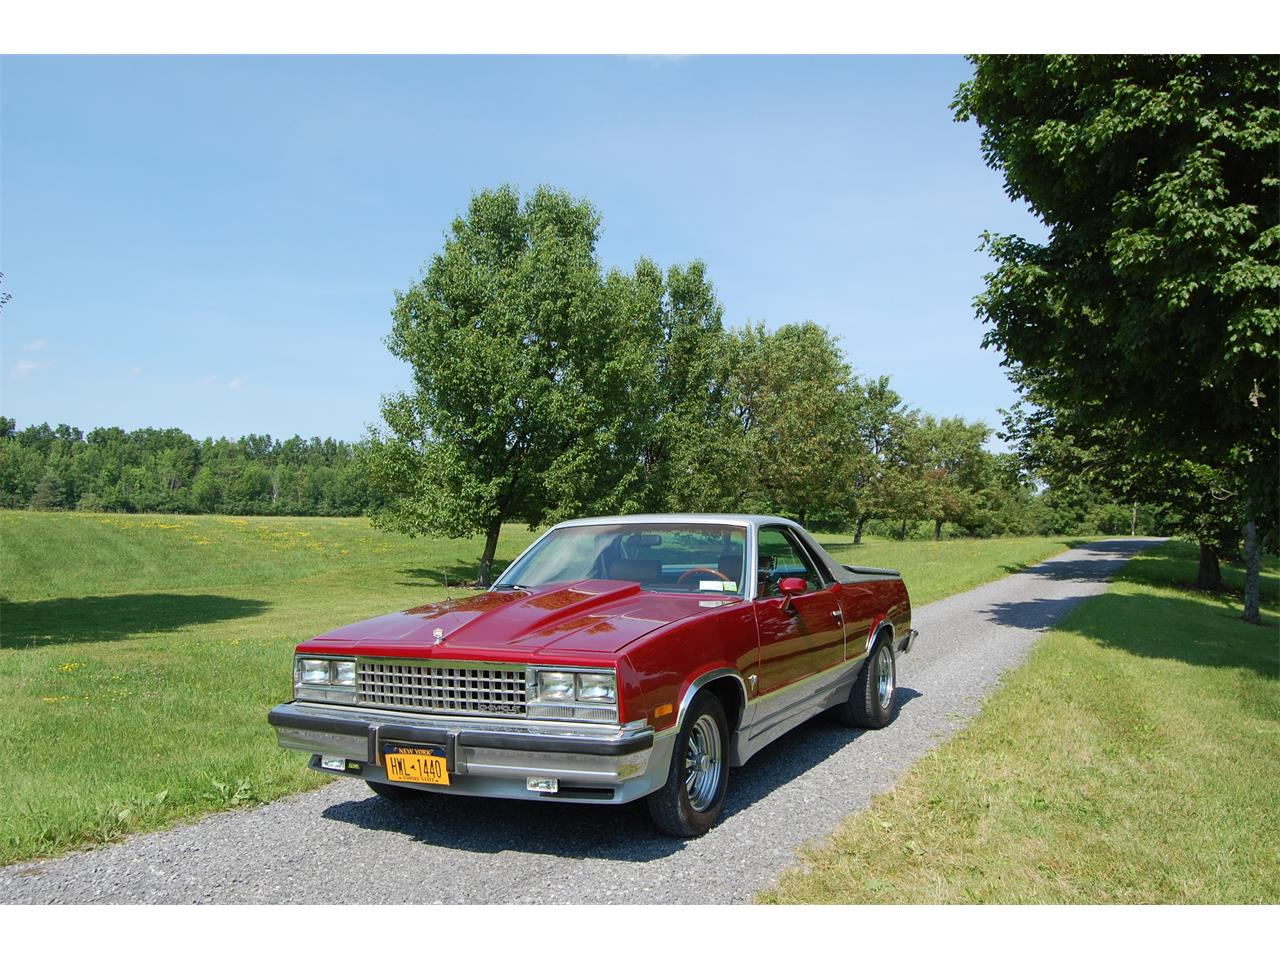 Large Picture of '84 El Camino located in New York - $18,500.00 Offered by a Private Seller - O8B6